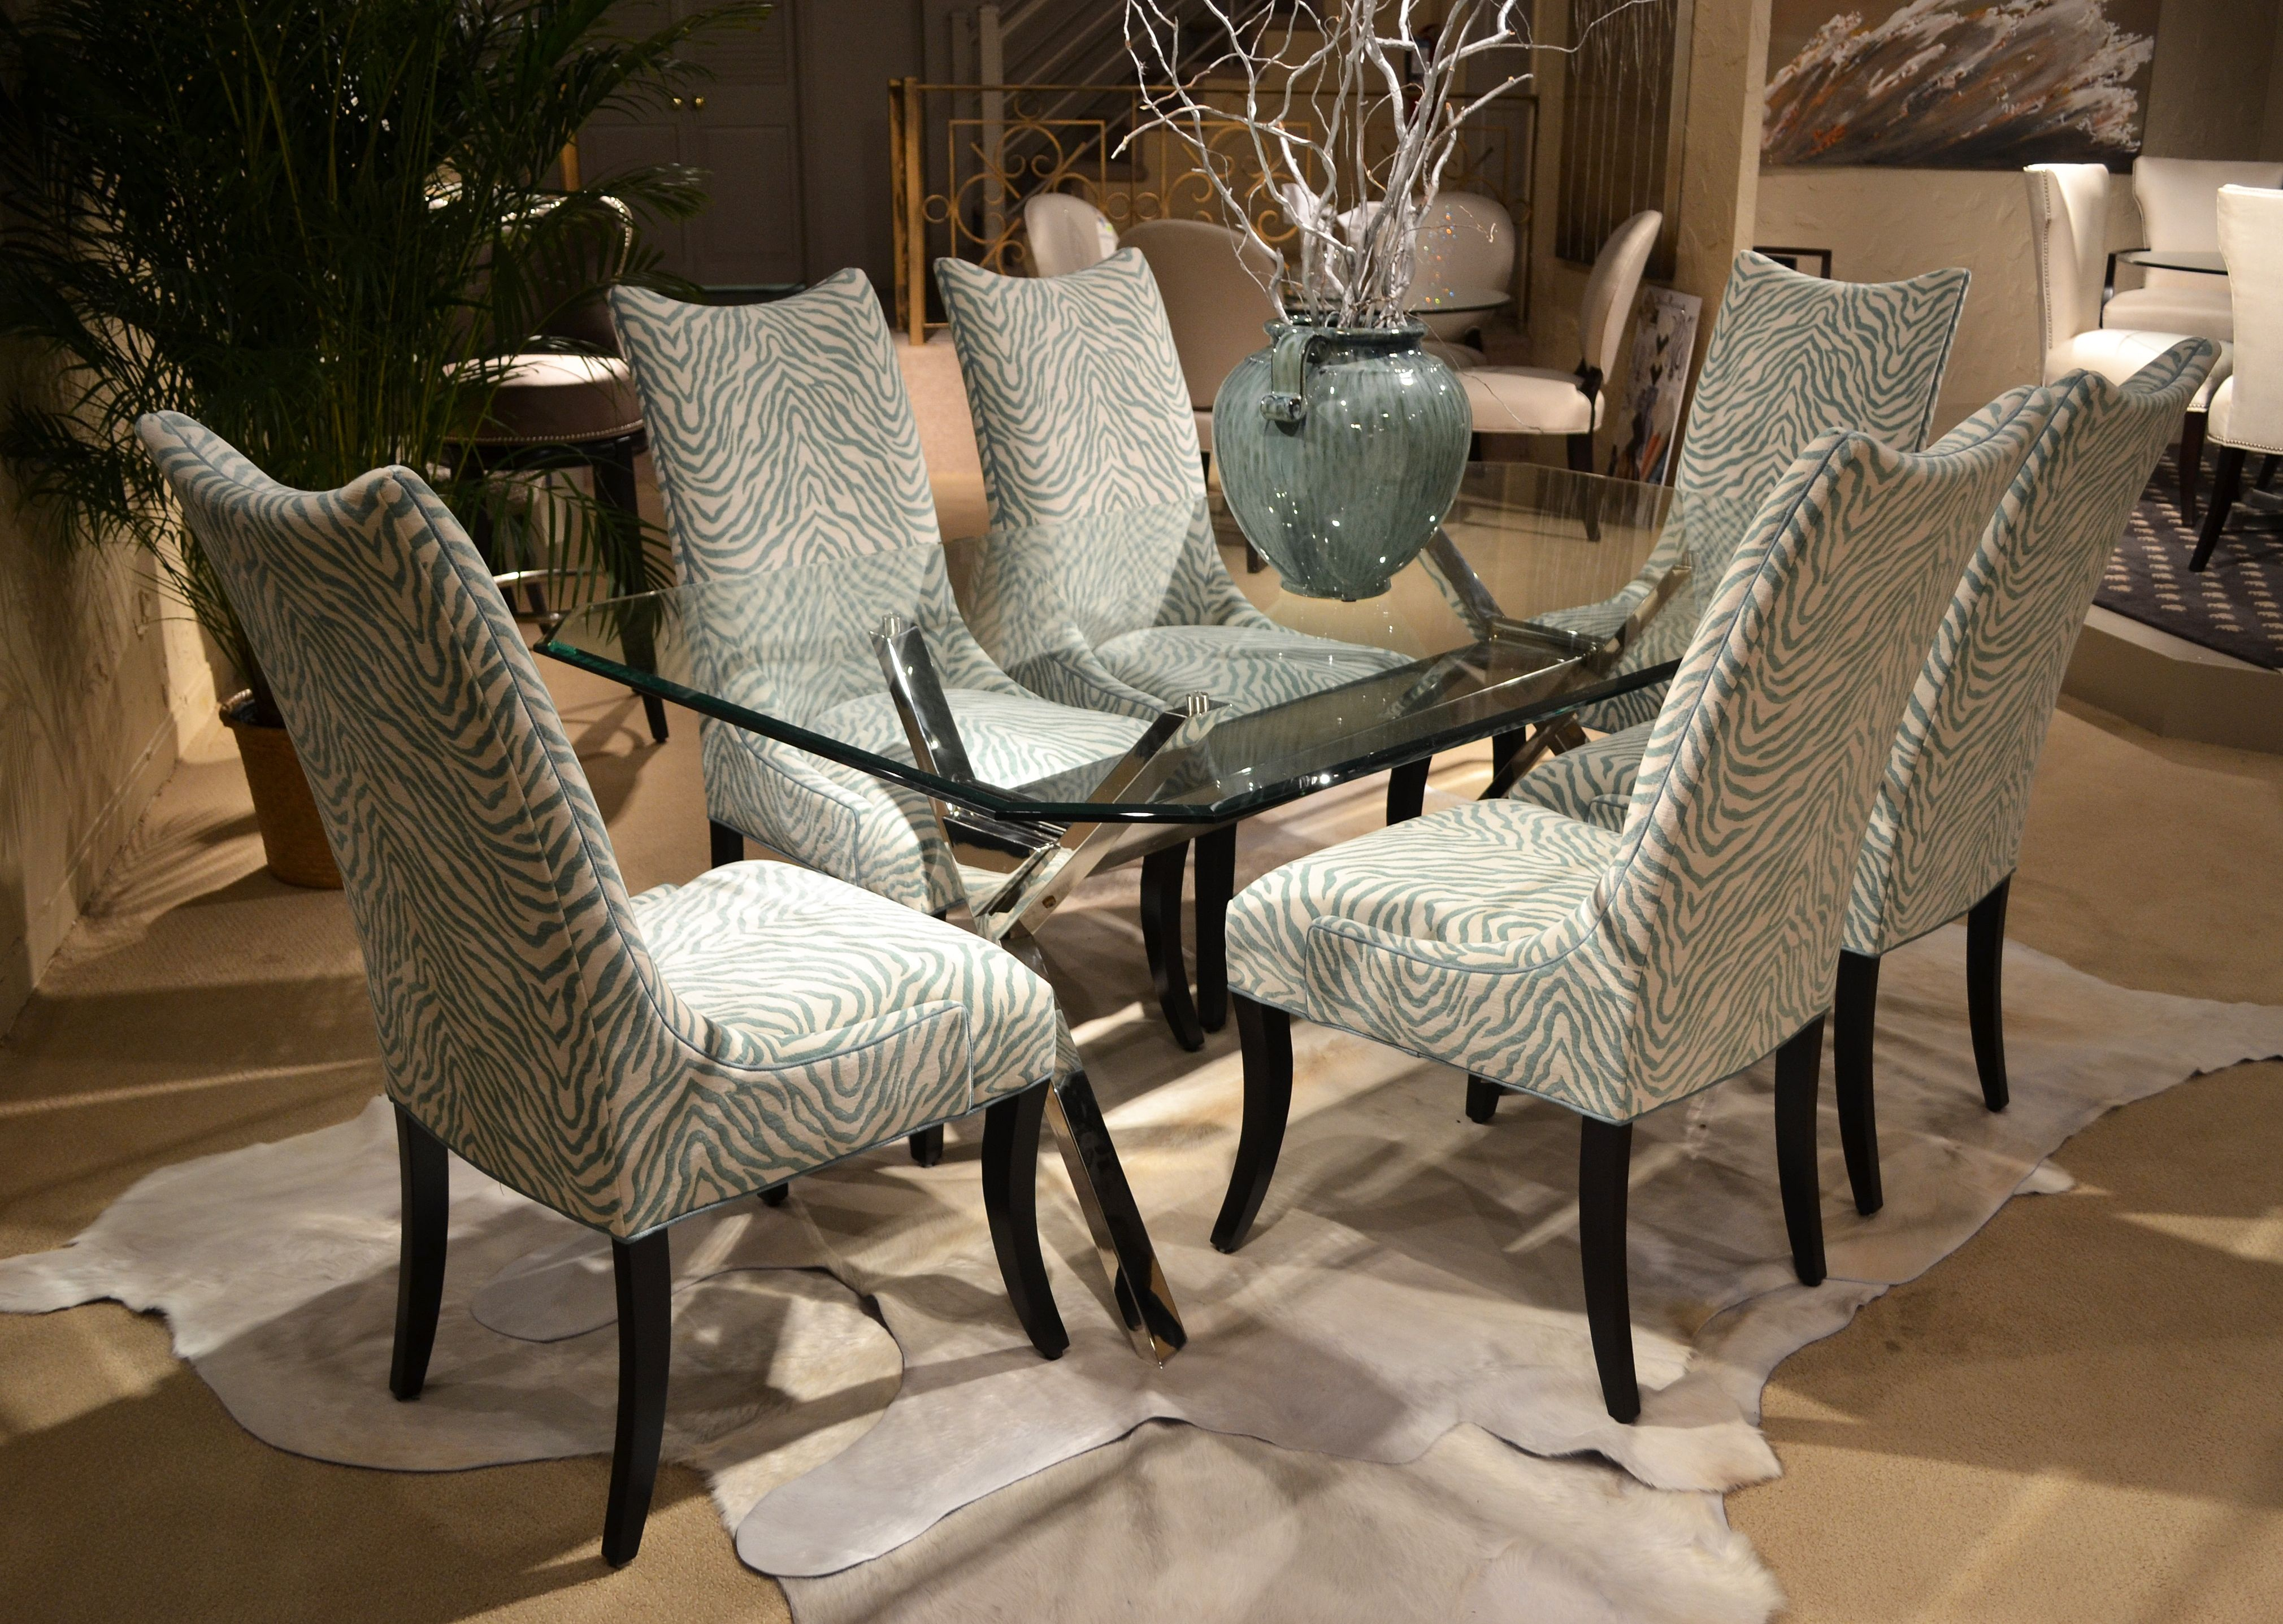 Dining Chair Set In Turquoise And Cream Zebra  Animal Print Unique Zebra Dining Room Chairs Inspiration